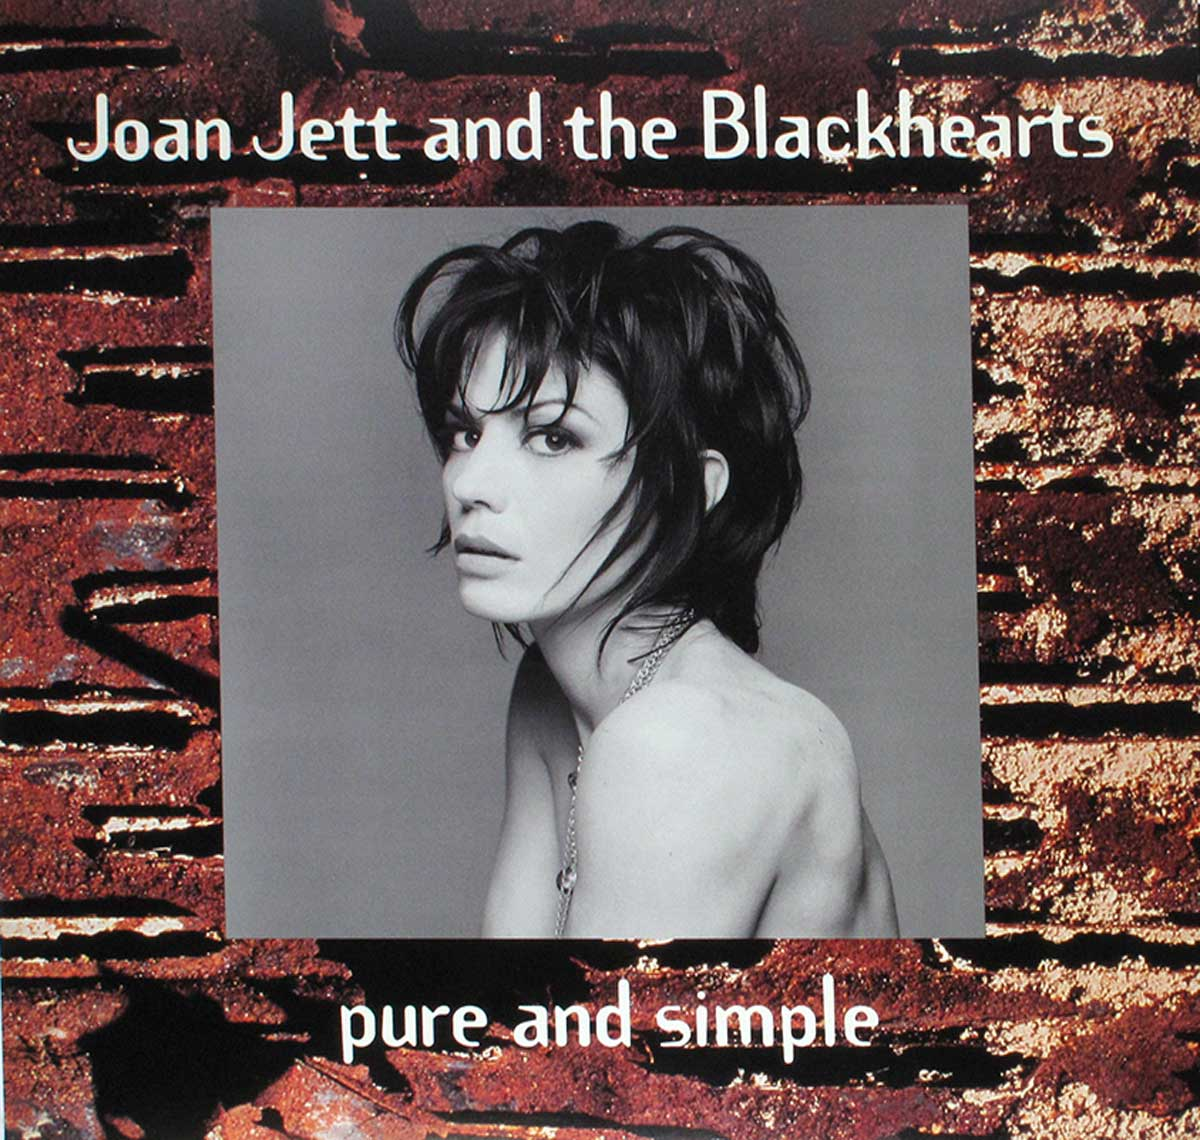 The photo shows a black and white nude Joan Jett portrait photo on a brick wall background